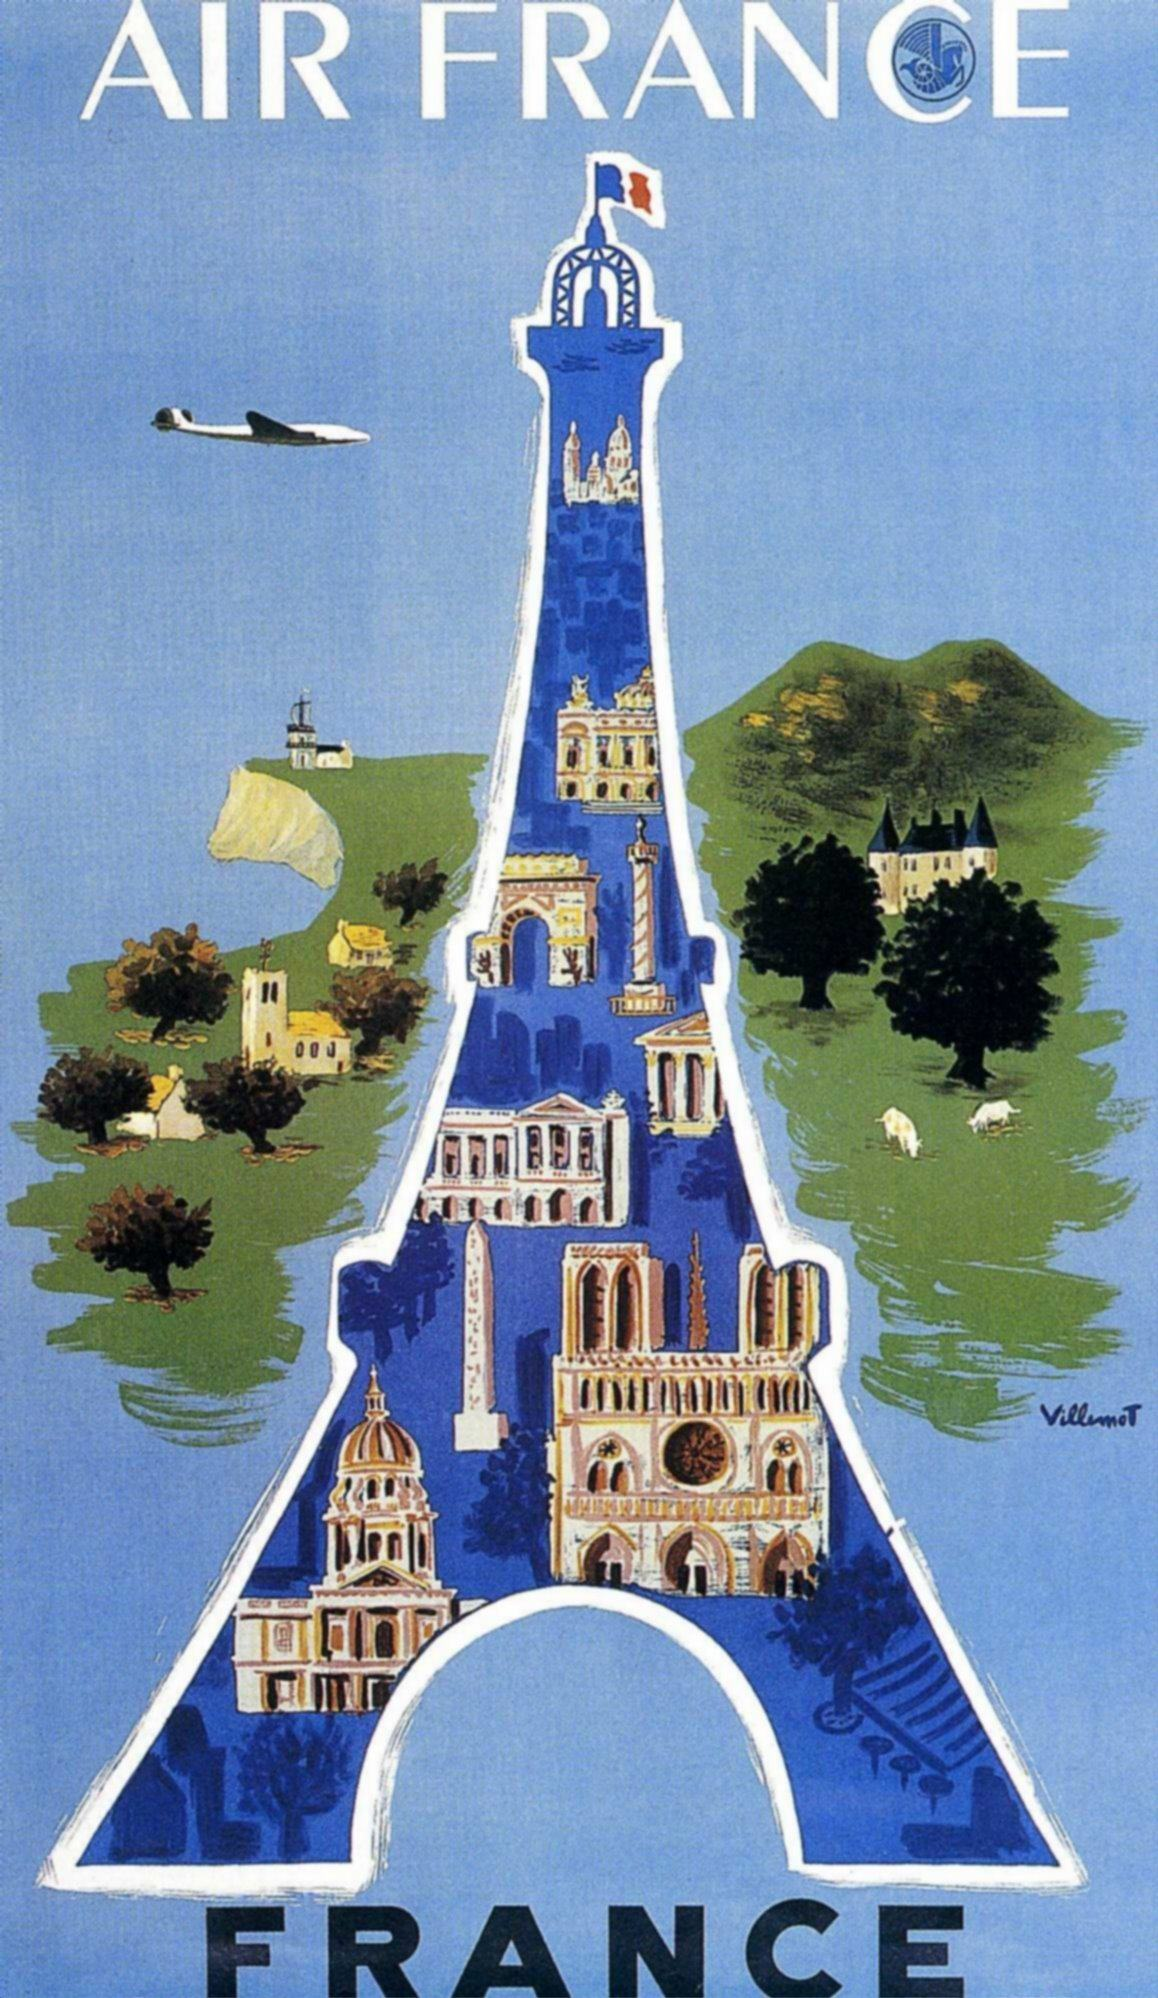 Affiche Musee Air France 50 cm x 70 cm - FRANCE